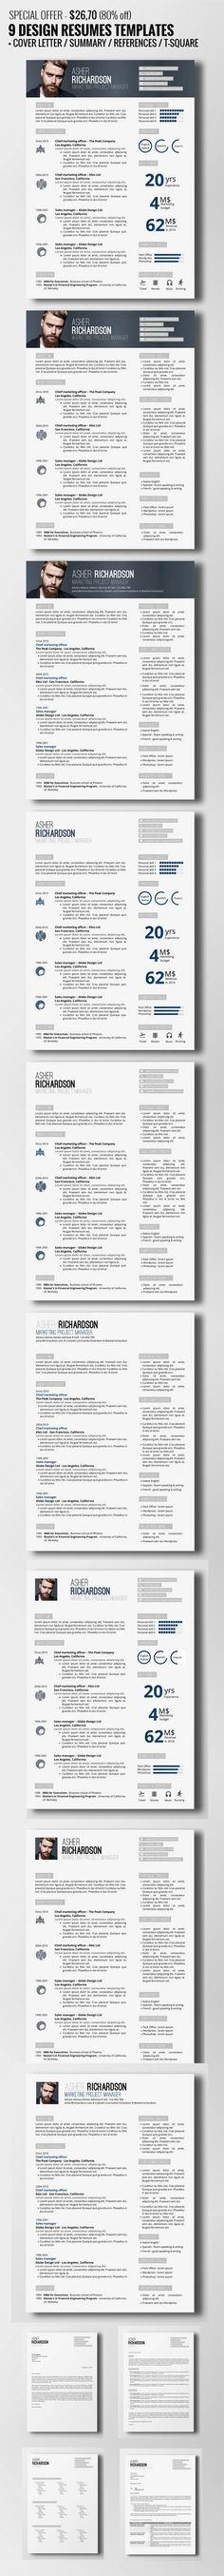 435 best Resume images on Pinterest Resume design, Design resume - resume examples for career change